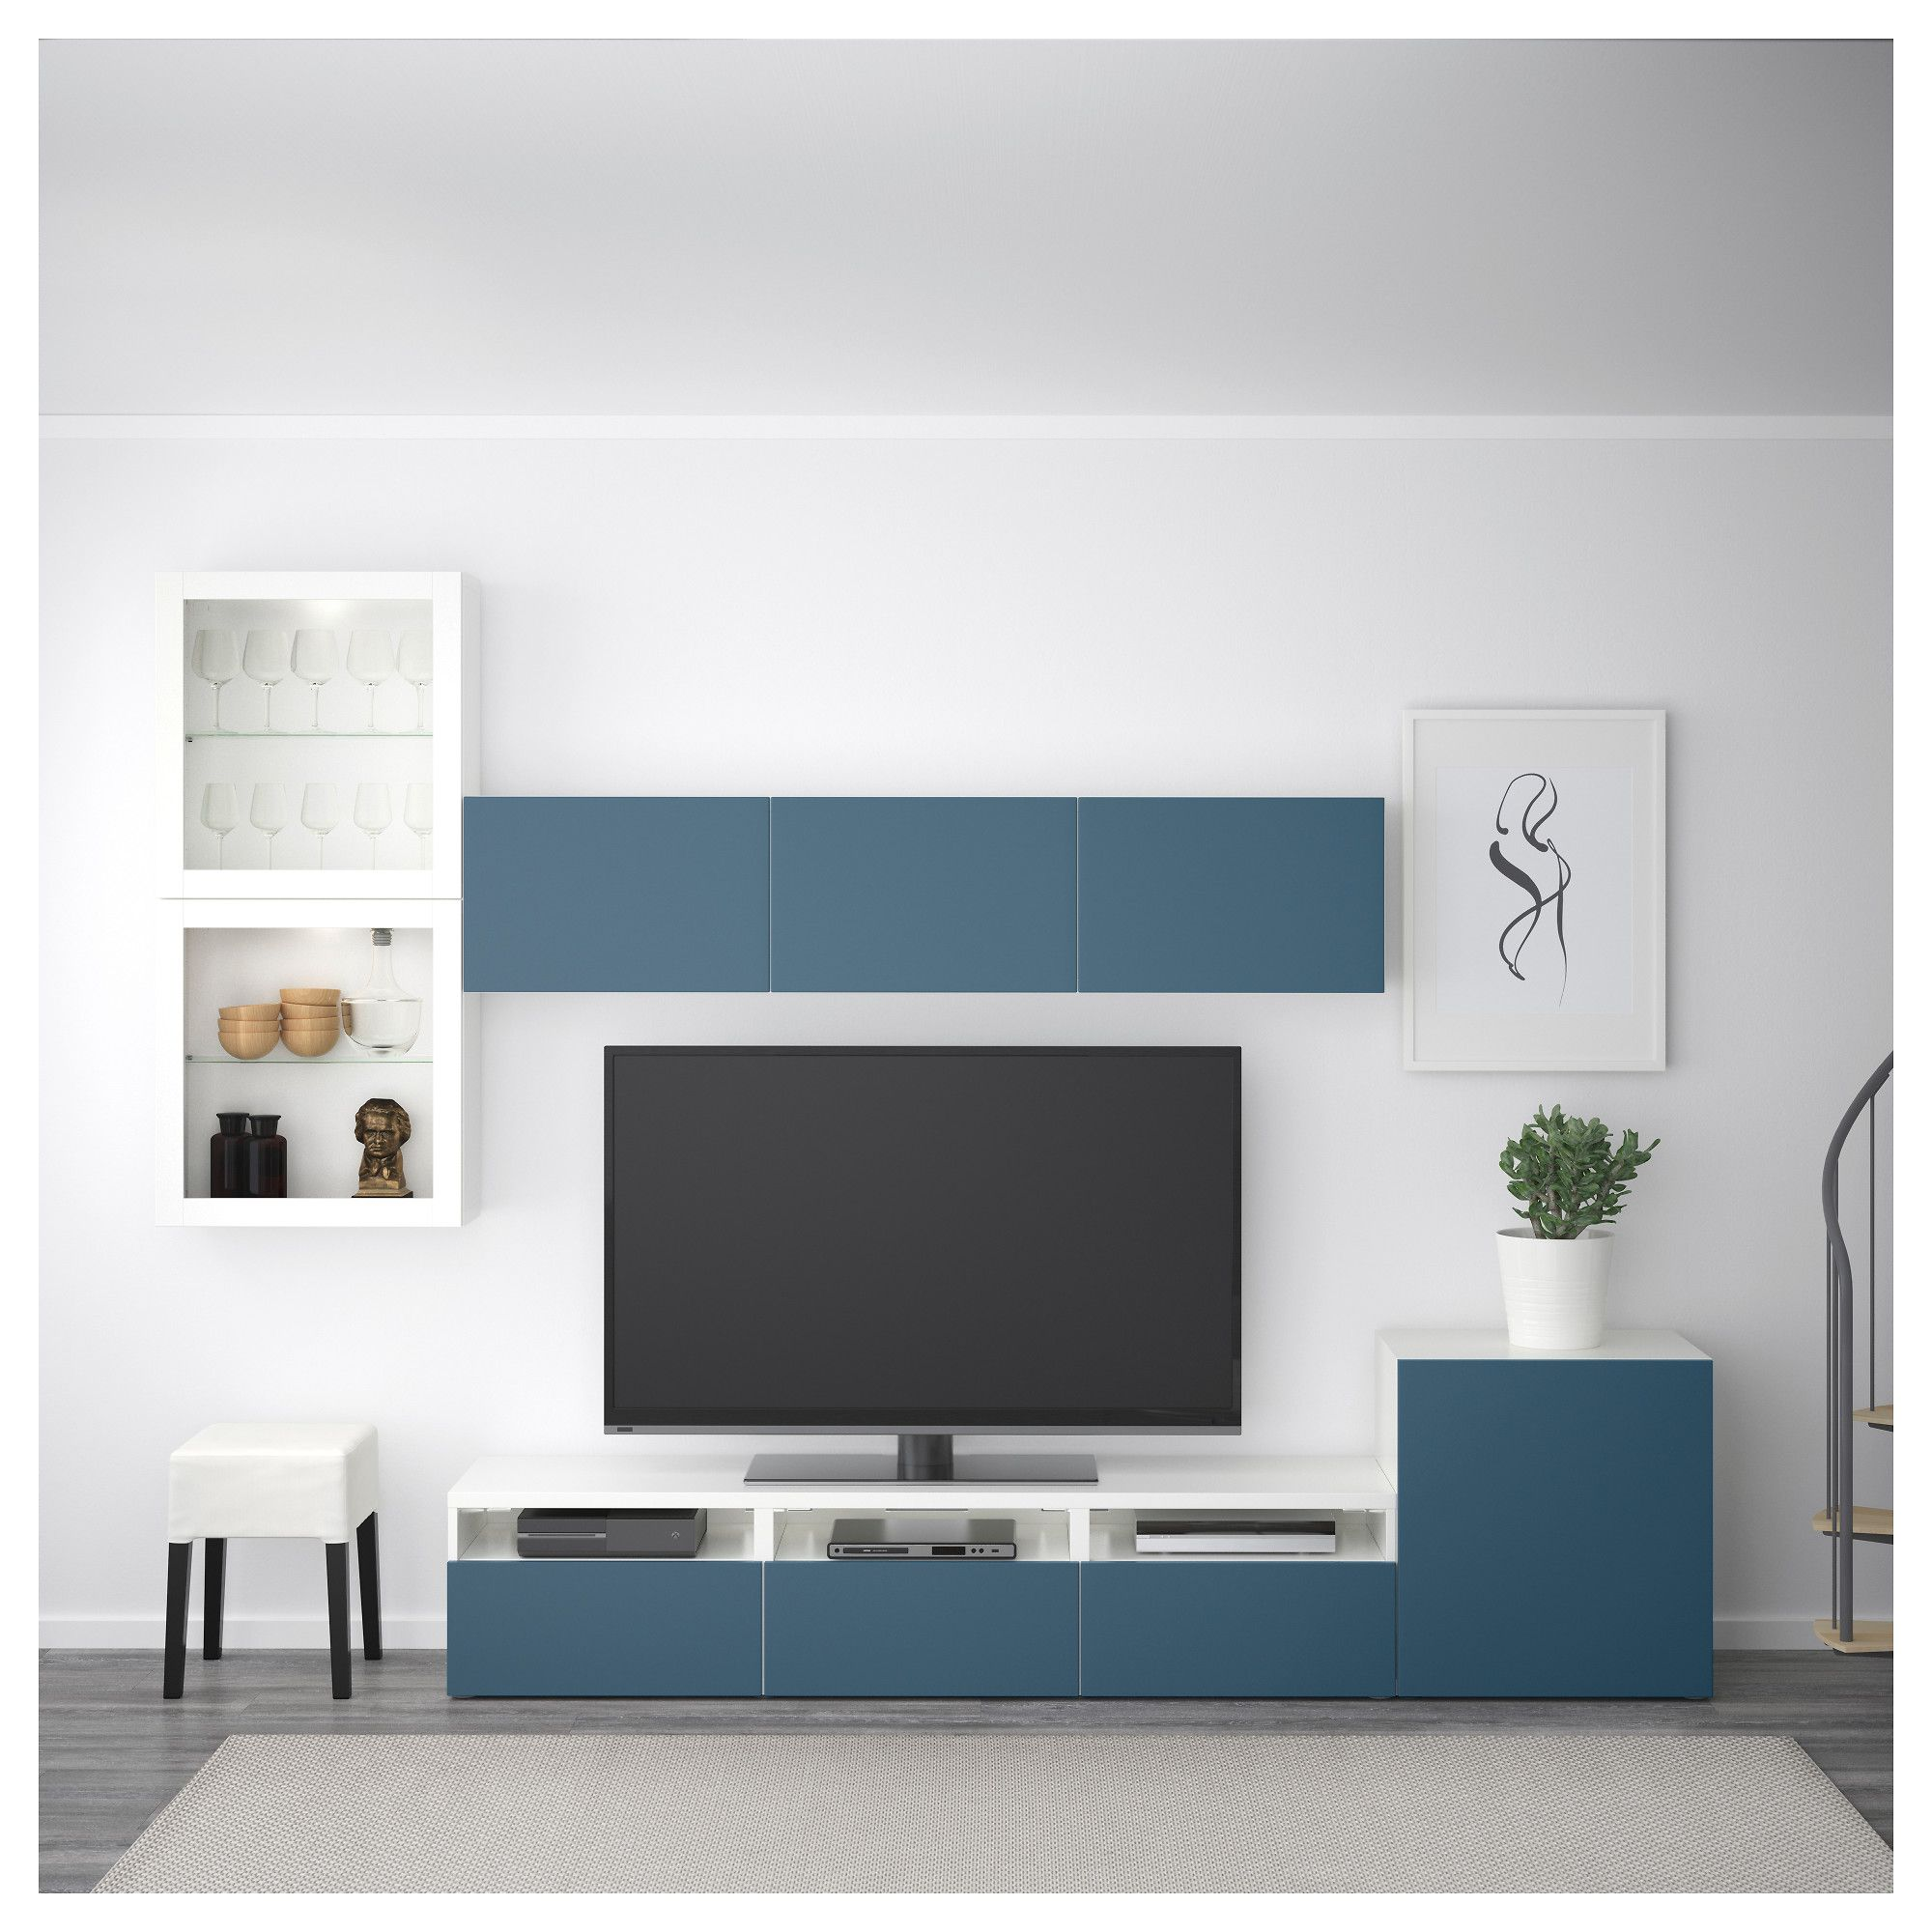 Ikea Meuble Bas Tv Tv Storage Combination Glass Doors BestÅ White Valviken Dark Blue